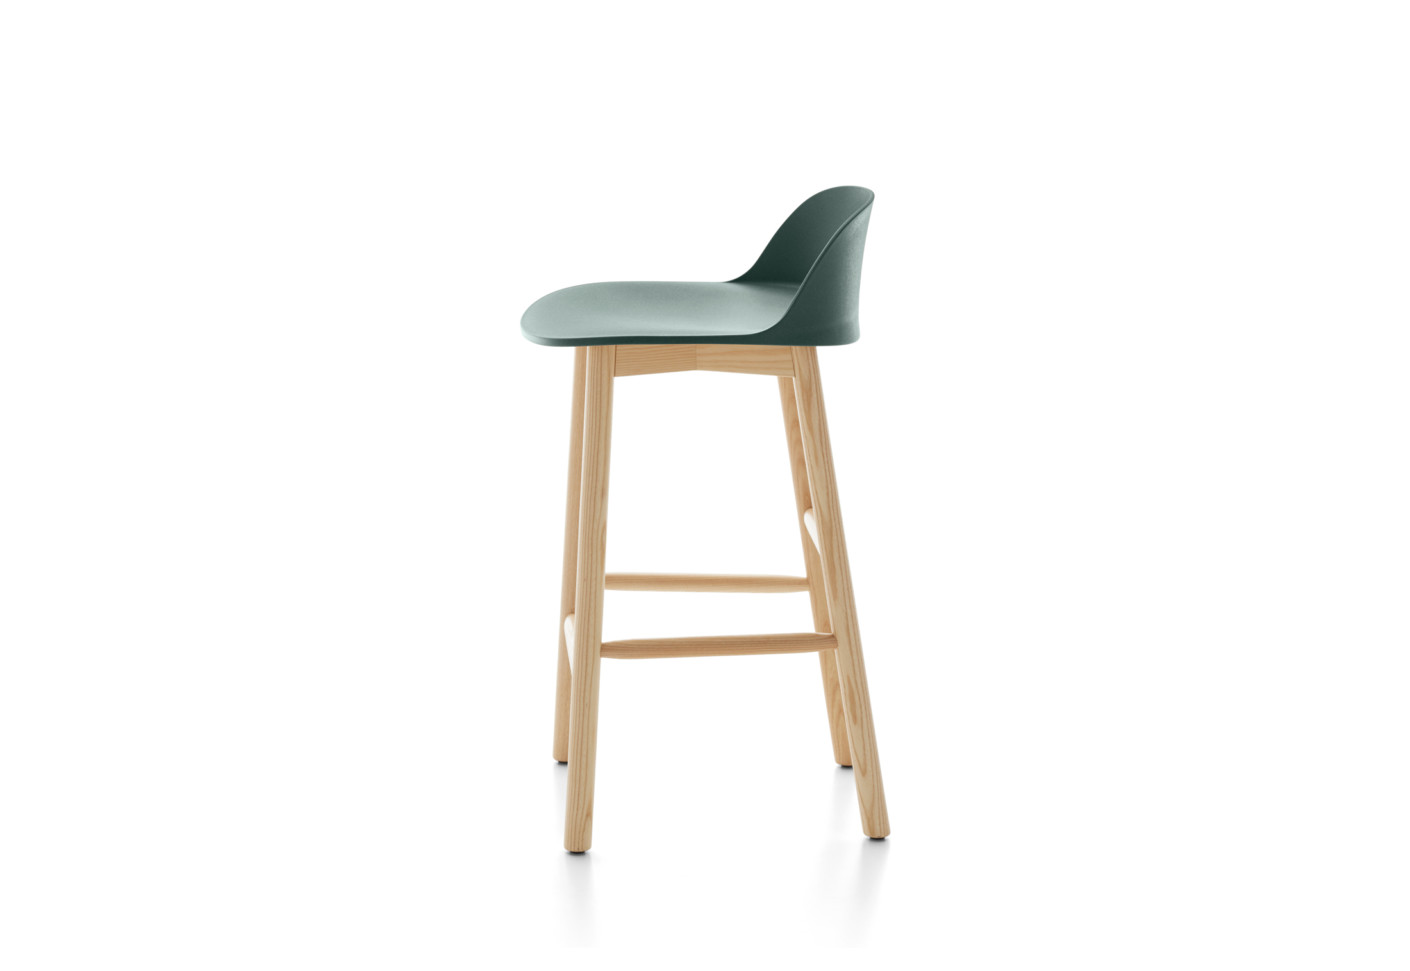 Alfi counter stool low back - Alfi Counter Stool Low Back By Emeco STYLEPARK